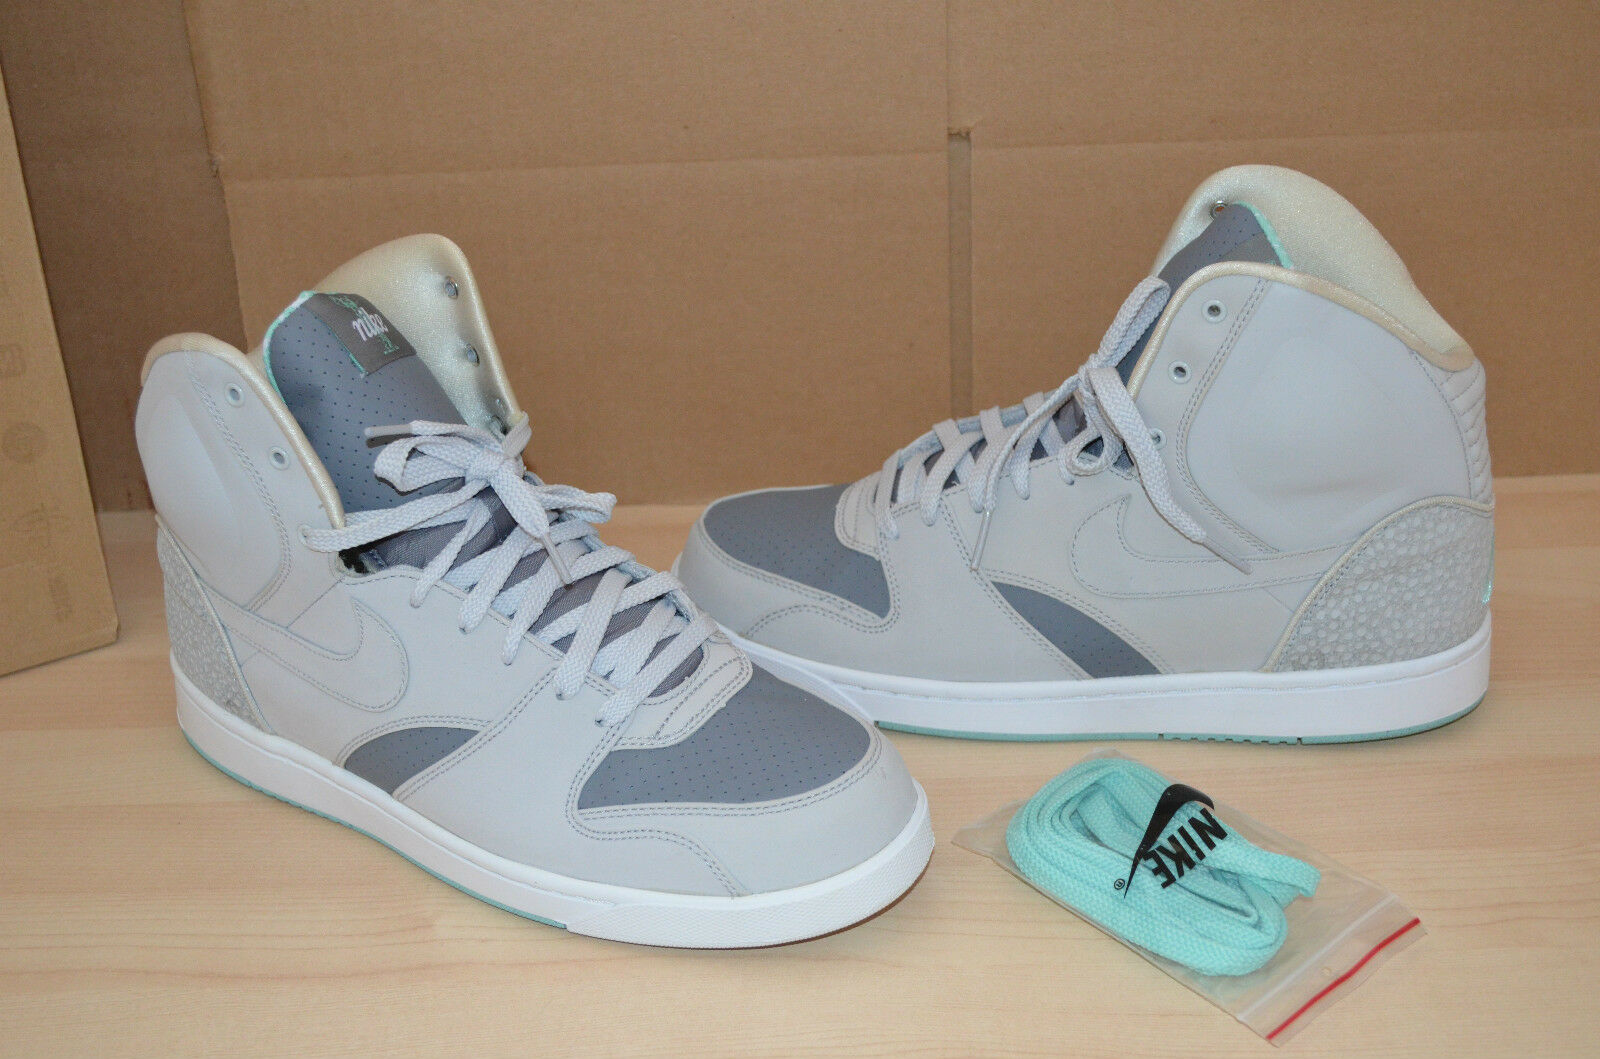 Nike RT1 High Mist Yeezy Natural Gray Green Mist High Mens Shoes Sneakers Size 10.5 d81fa8